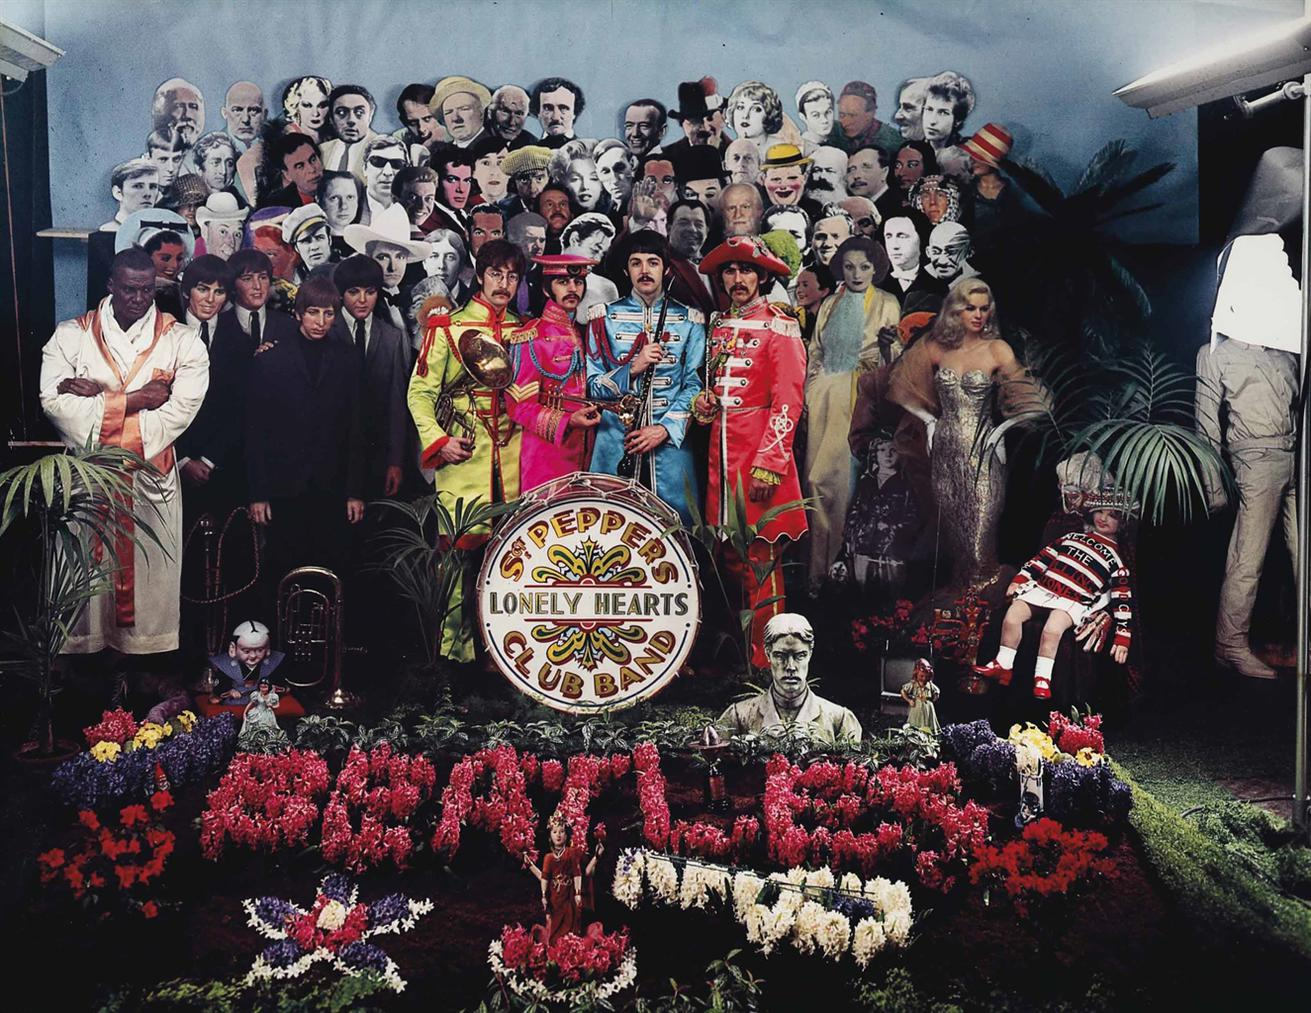 Michael Cooper-Sgt Peppers Lonely Hearts Club Band-1967